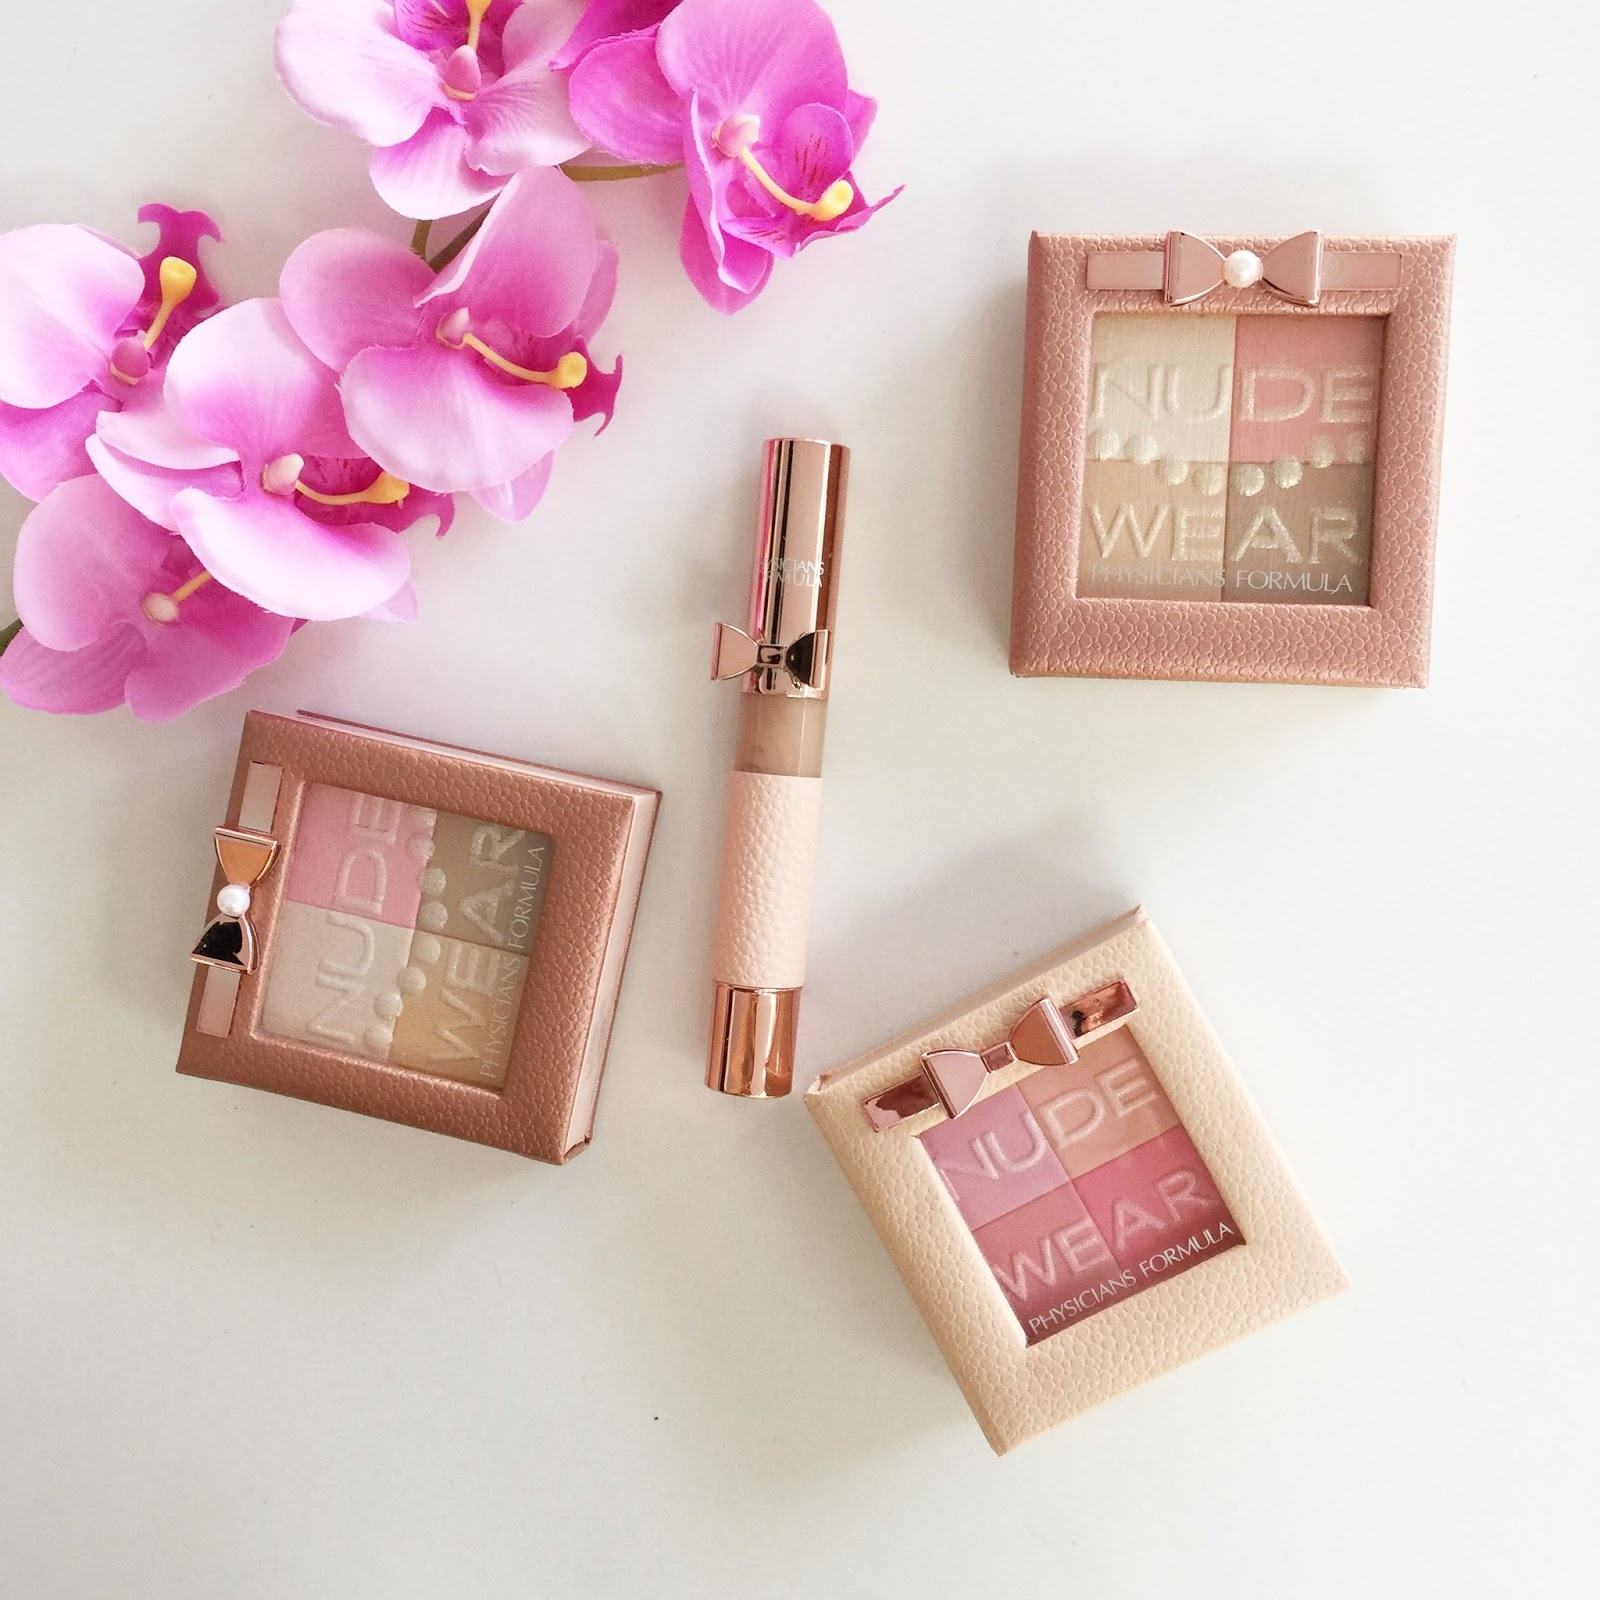 The range includes two Nude Wear Glow Palettes, a Nude Wear Blush and a Nude  Wear Touch of Glow Miracle Tool.